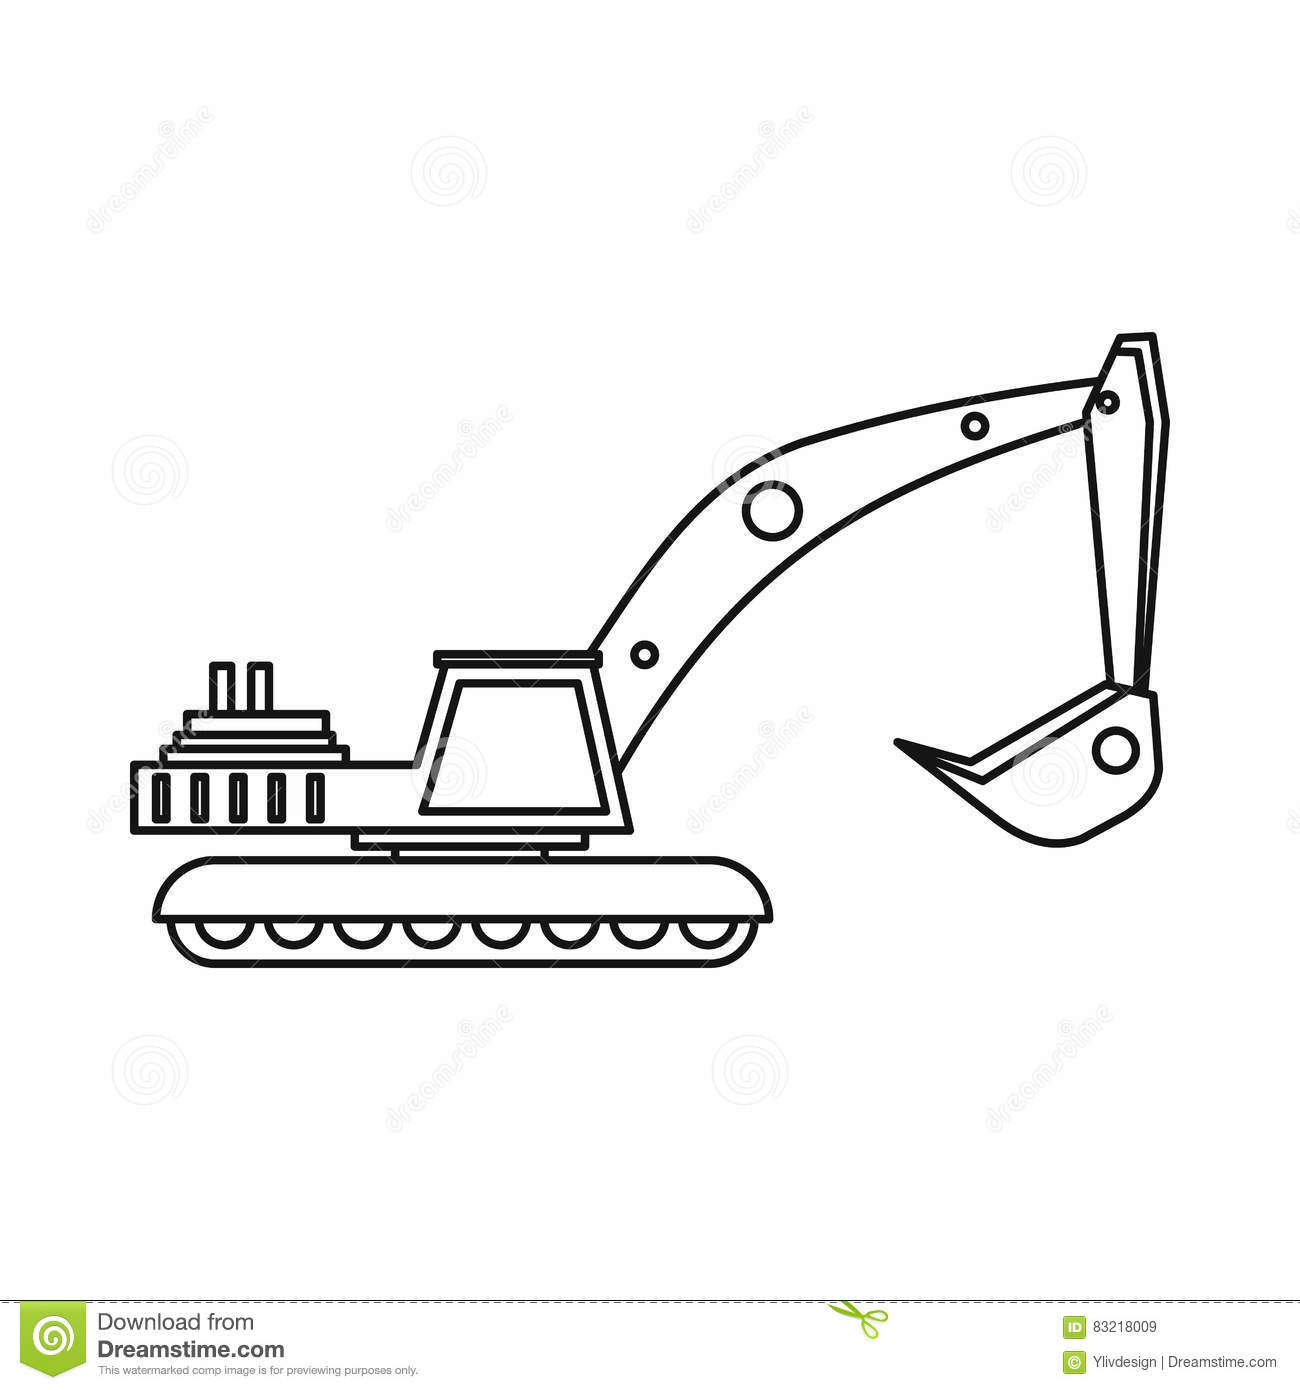 Excavator Icon In Monochrome Style Isolated On White